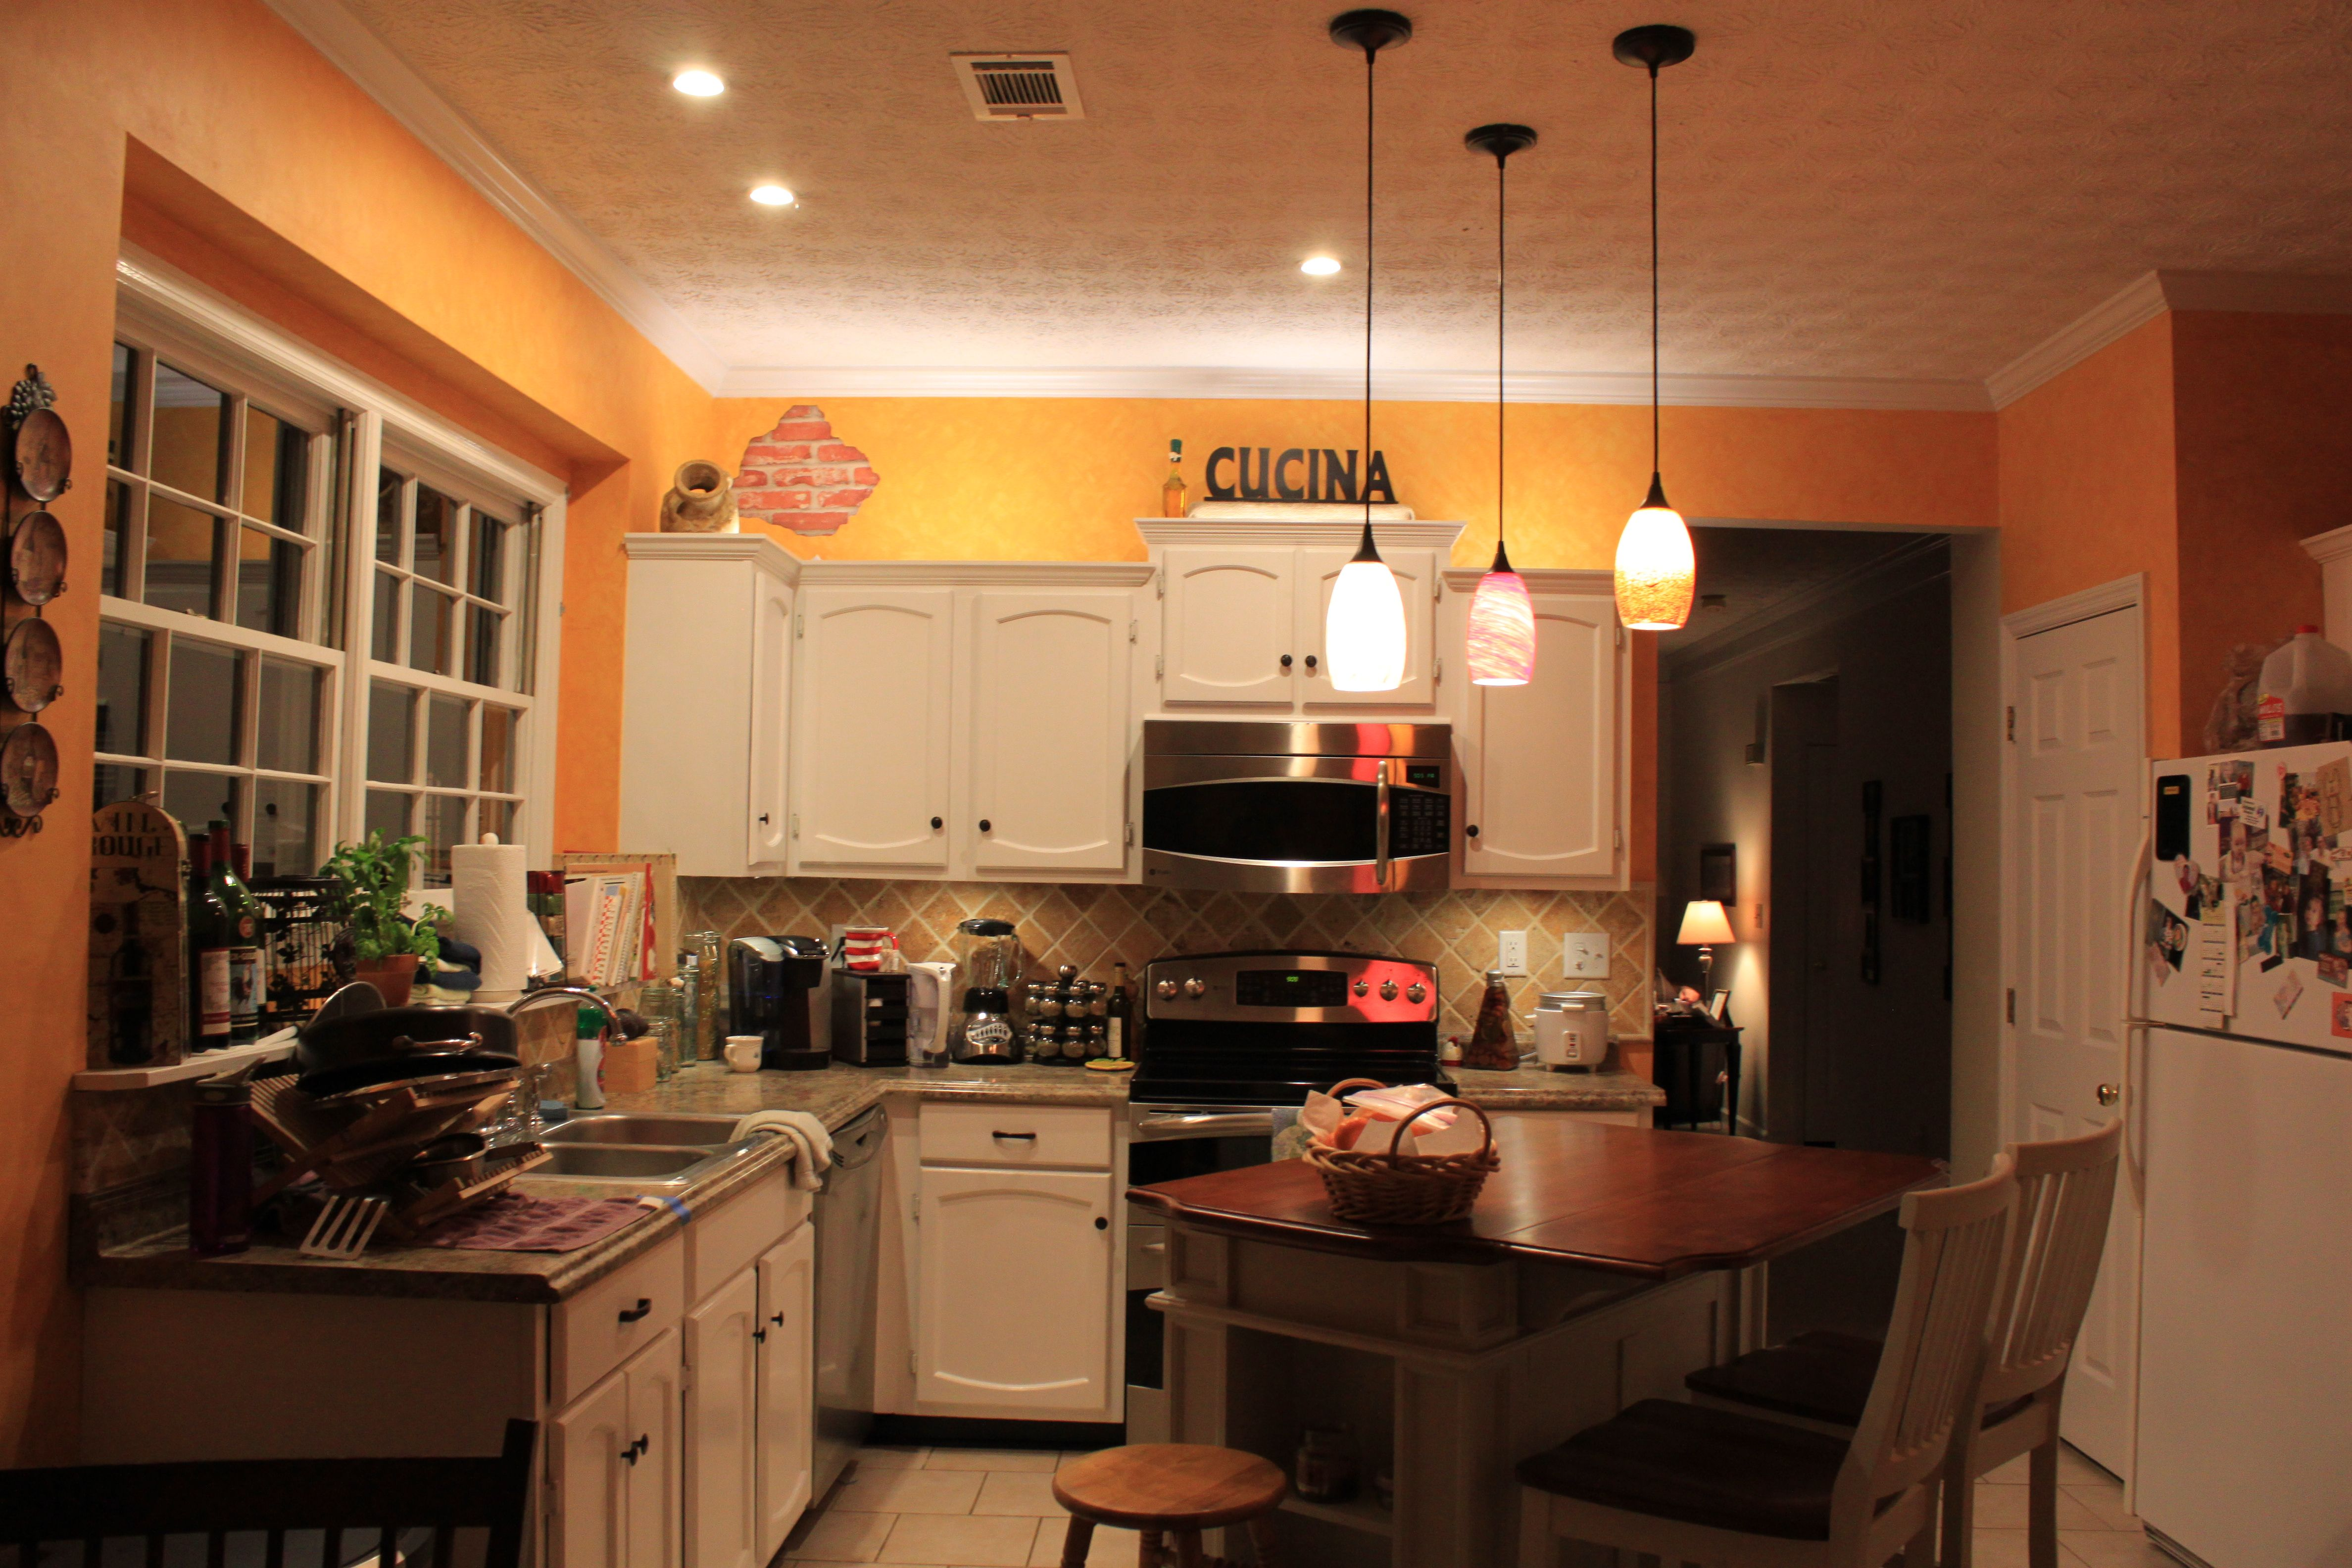 Tuscany Kitchen can lights and pendants (Lowe's), Island